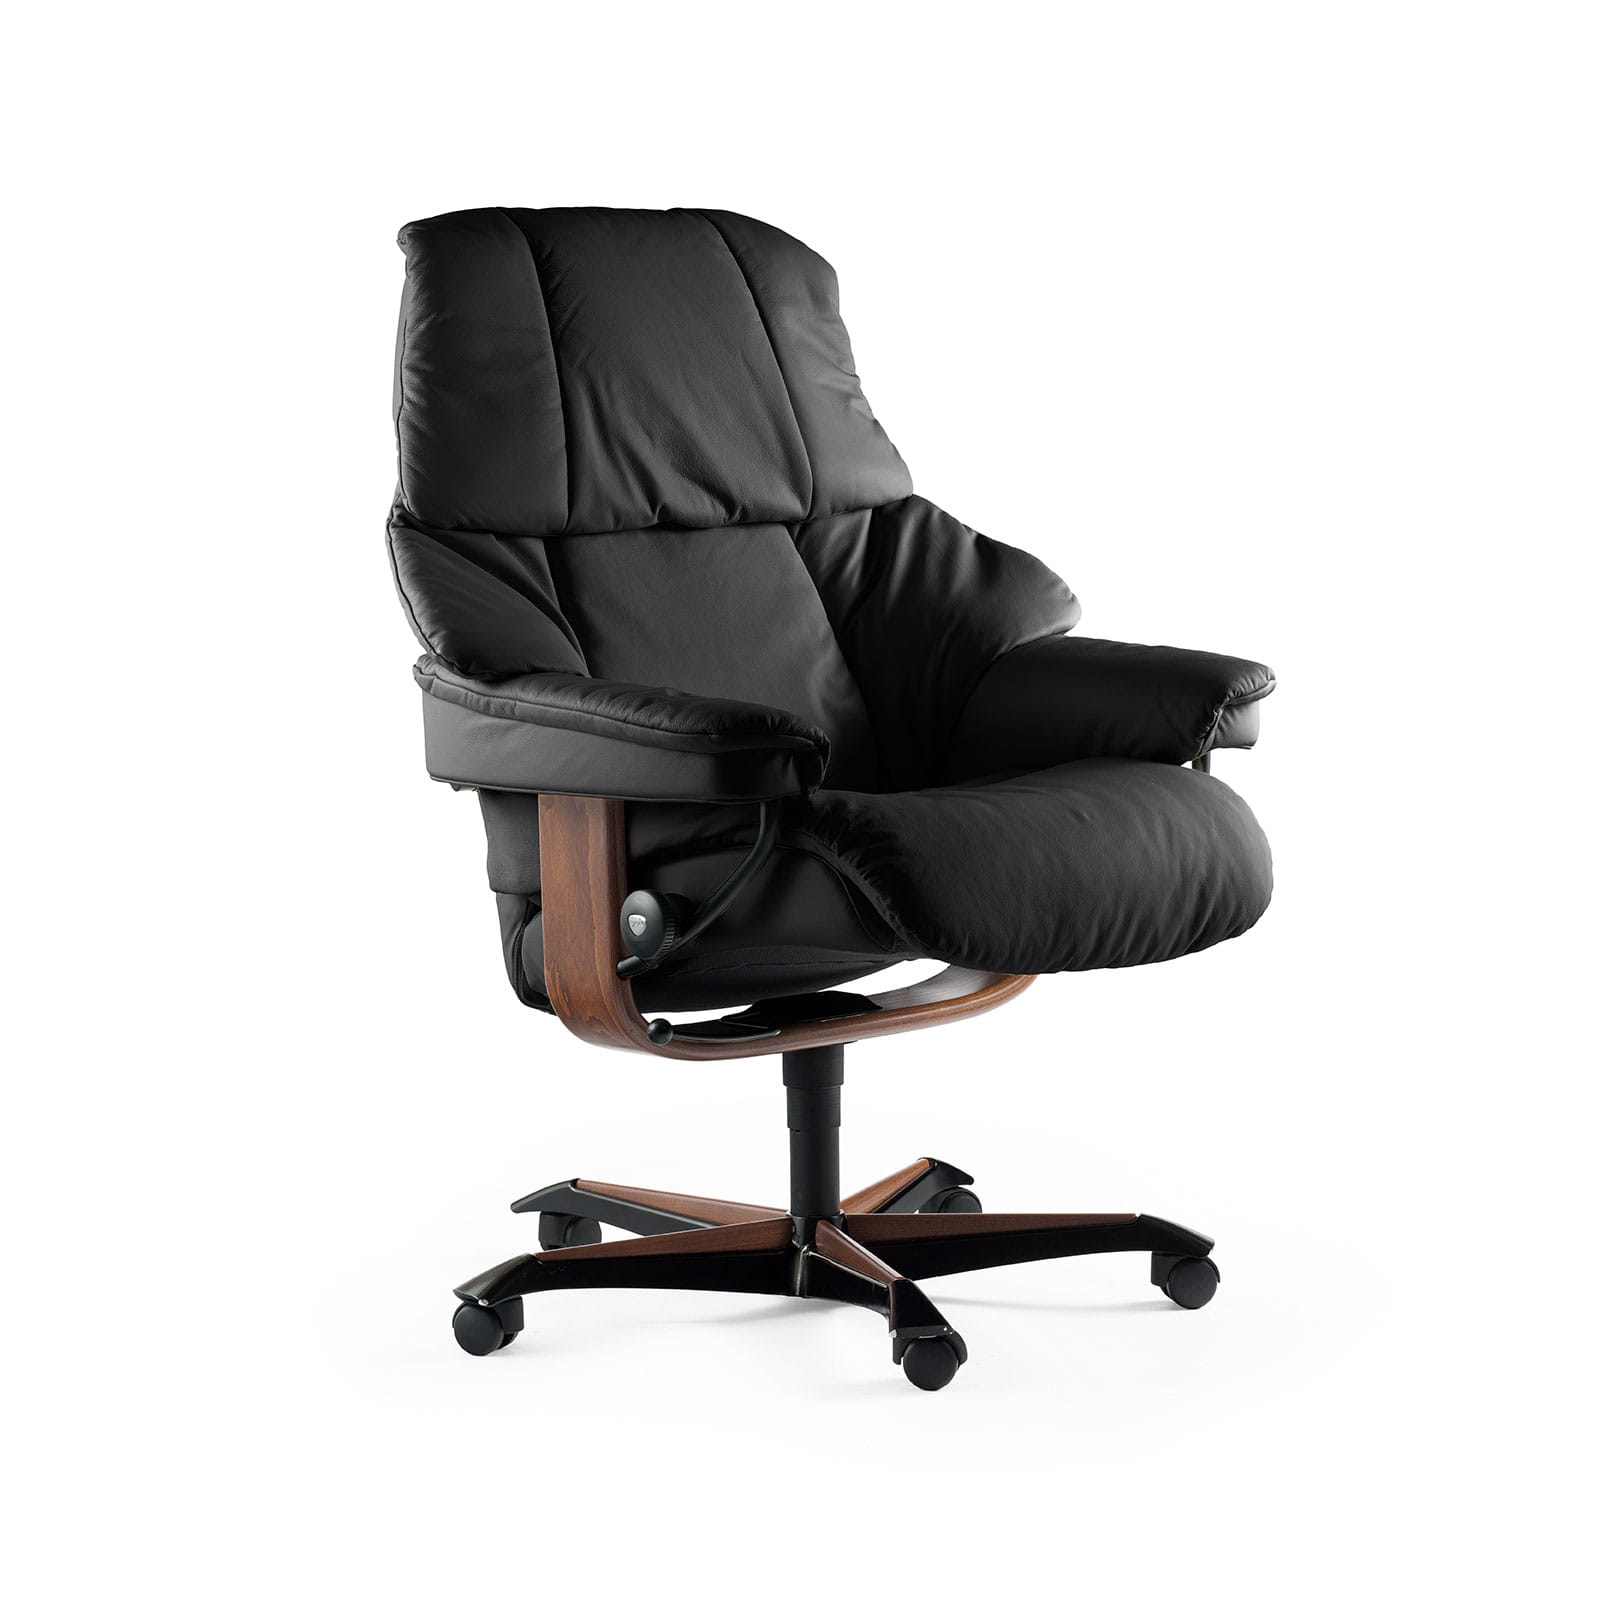 Stressless Sessel Sunrise.html Stressless Office